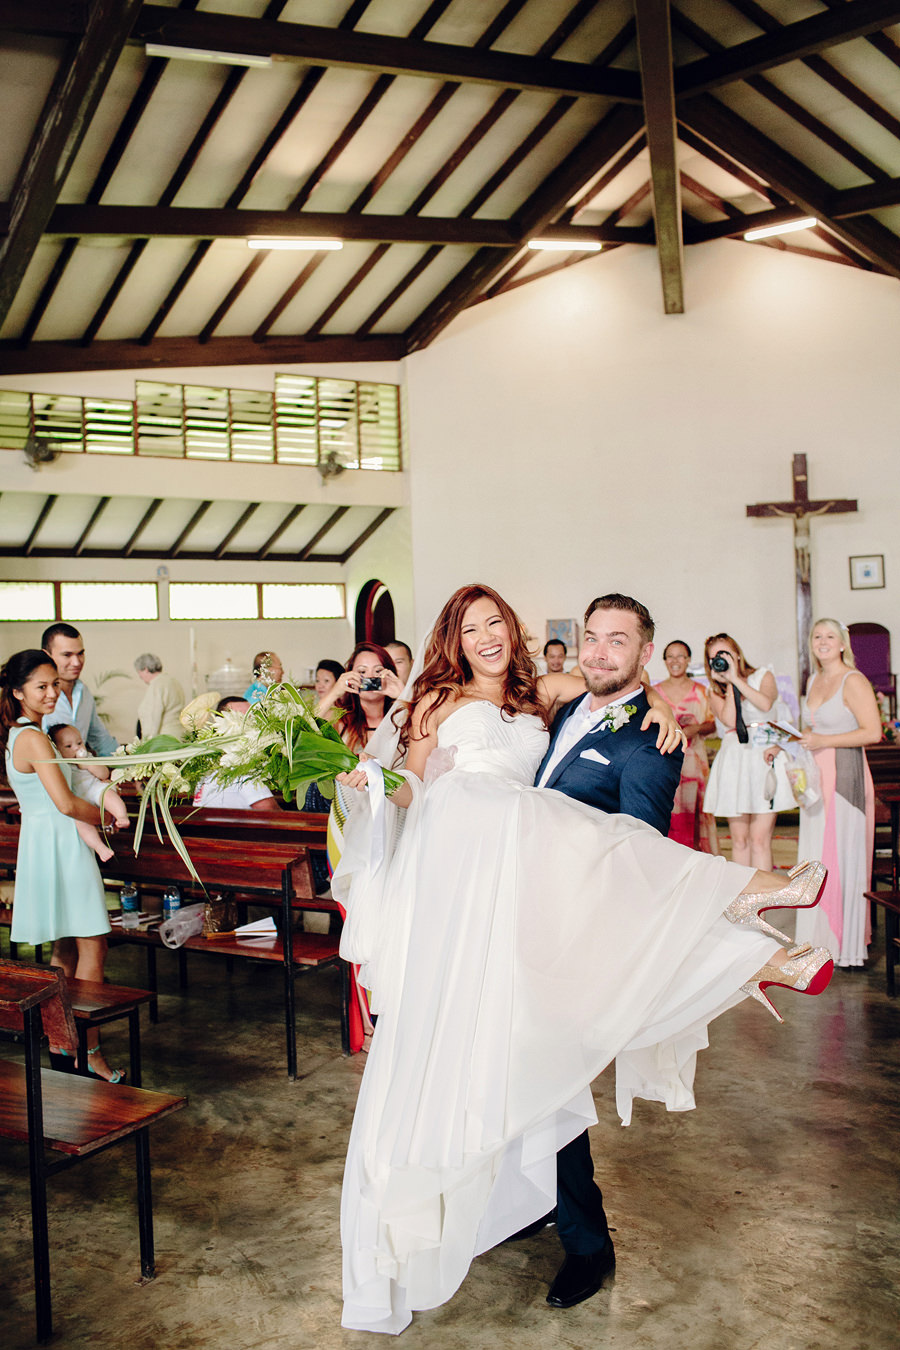 South Pacific Wedding Photographer: Bride carried down the aisle